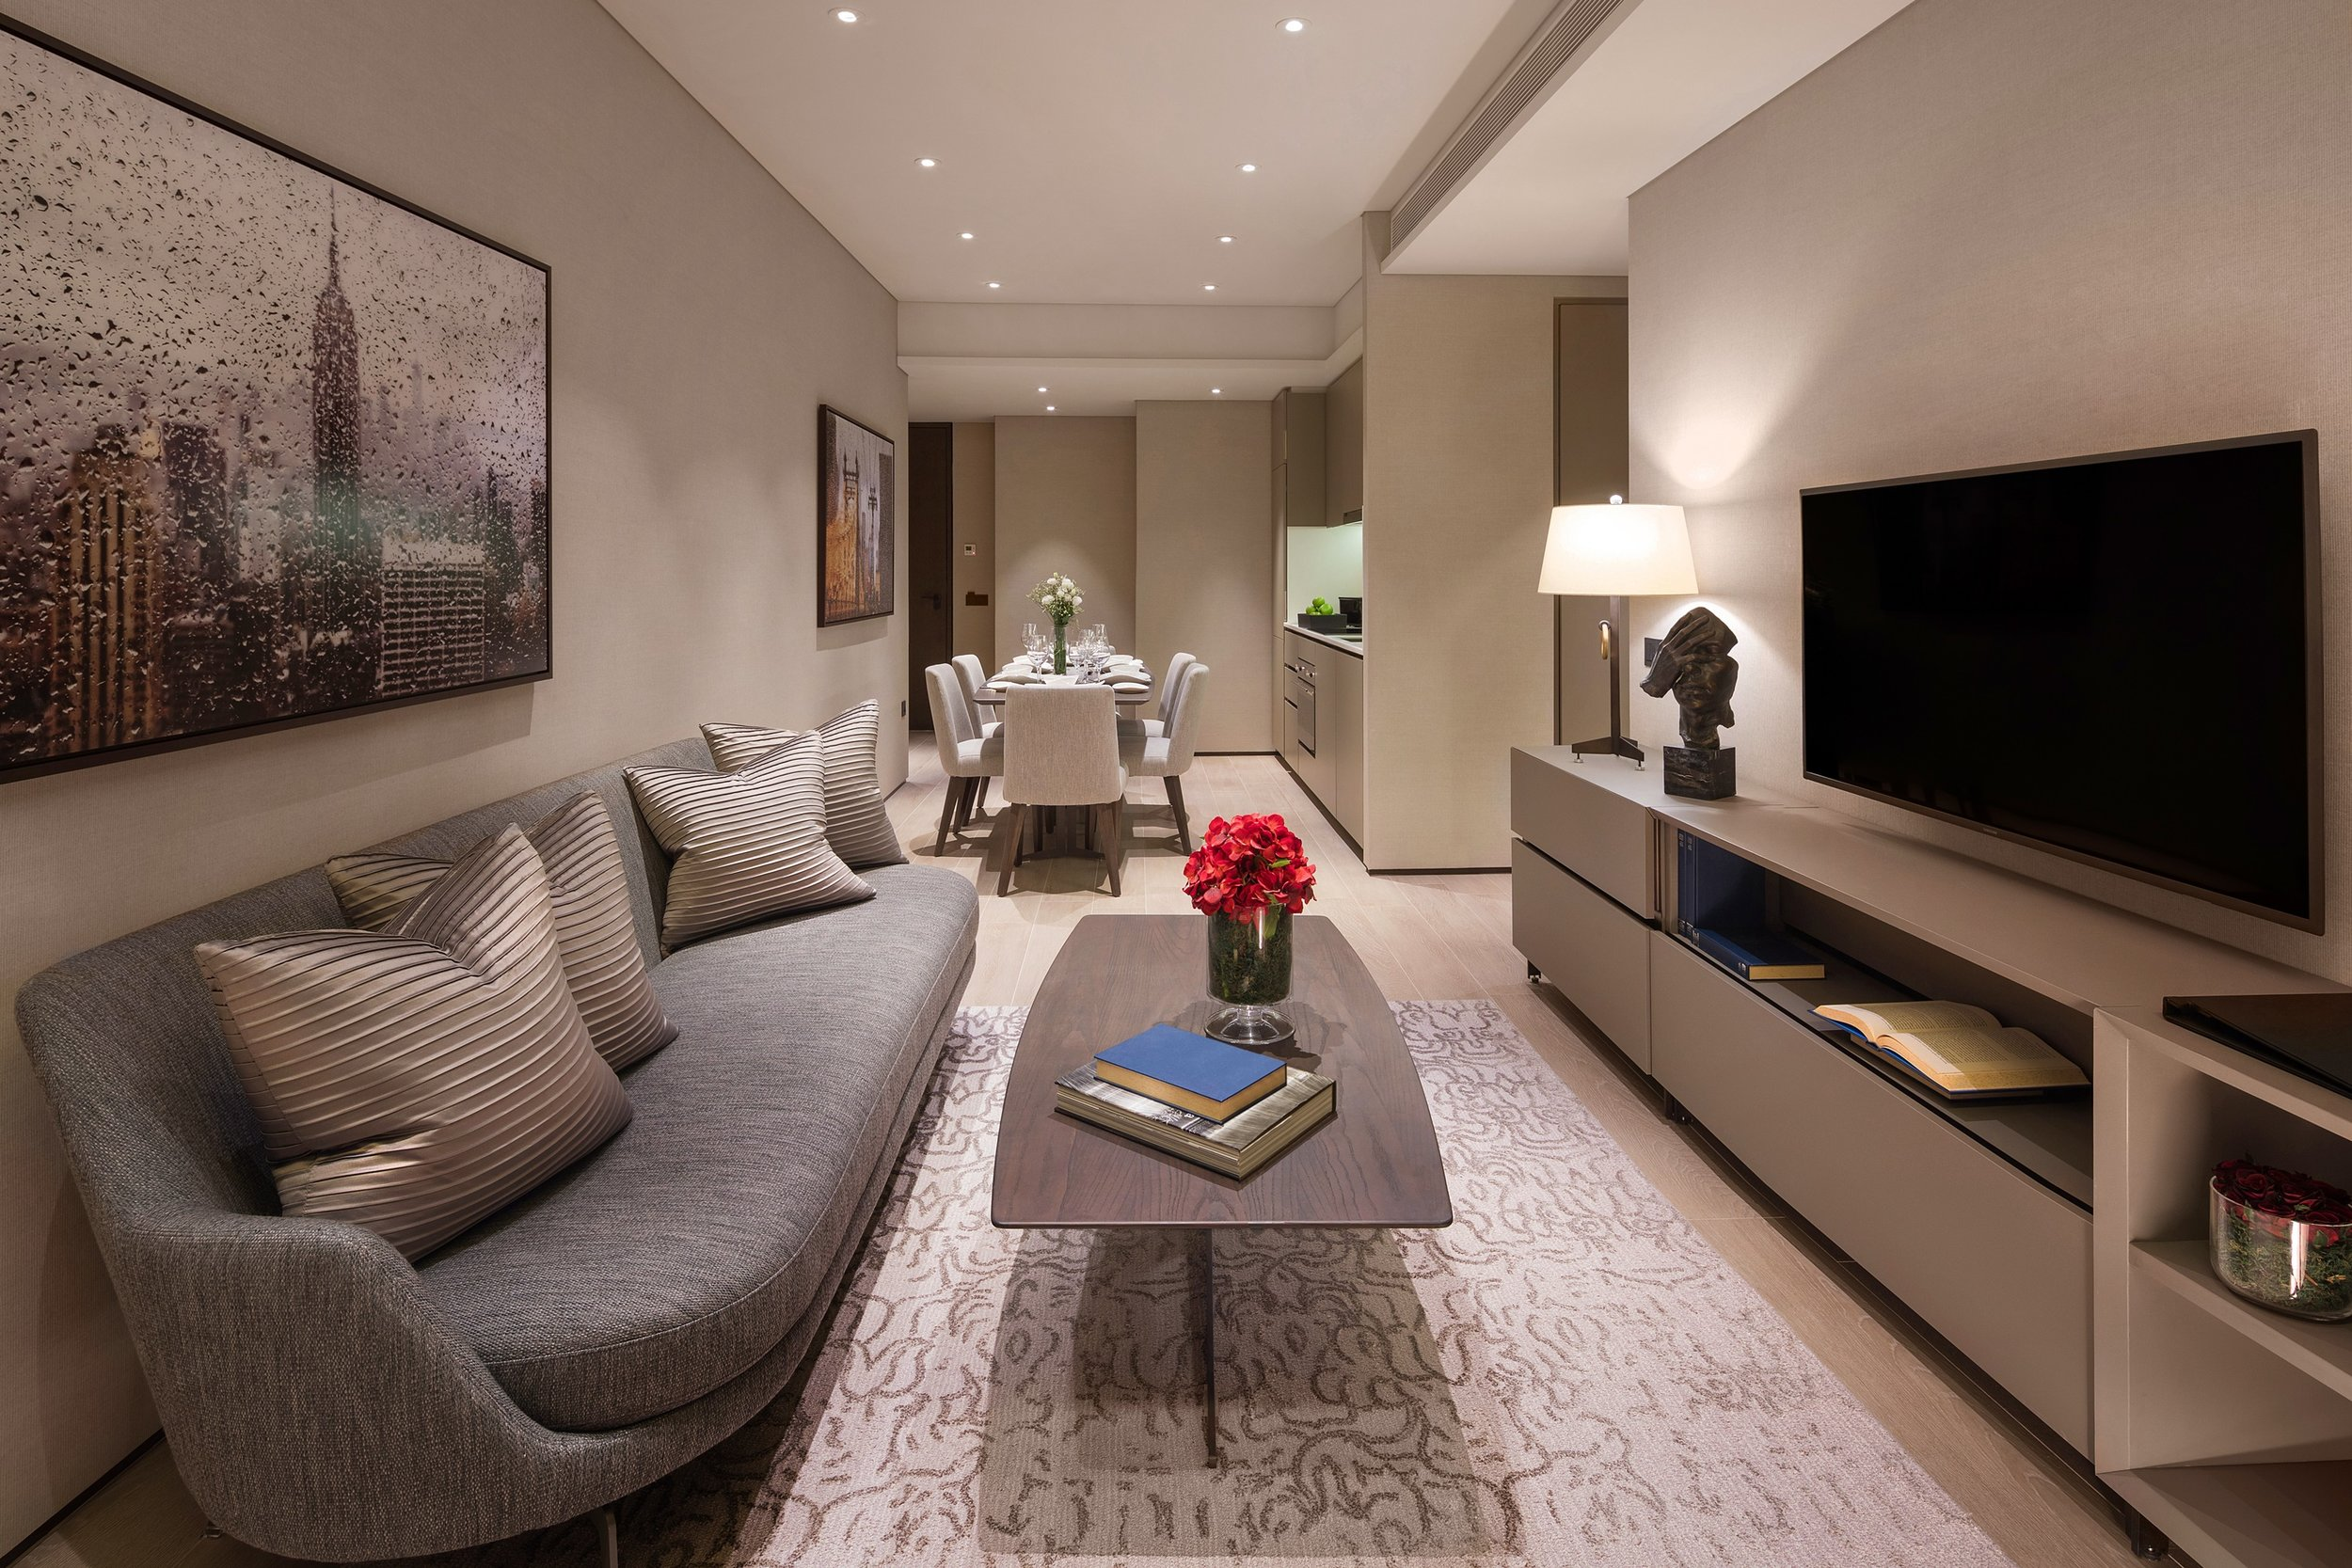 Two-Bedroom Apartment - Living Room 1.jpg